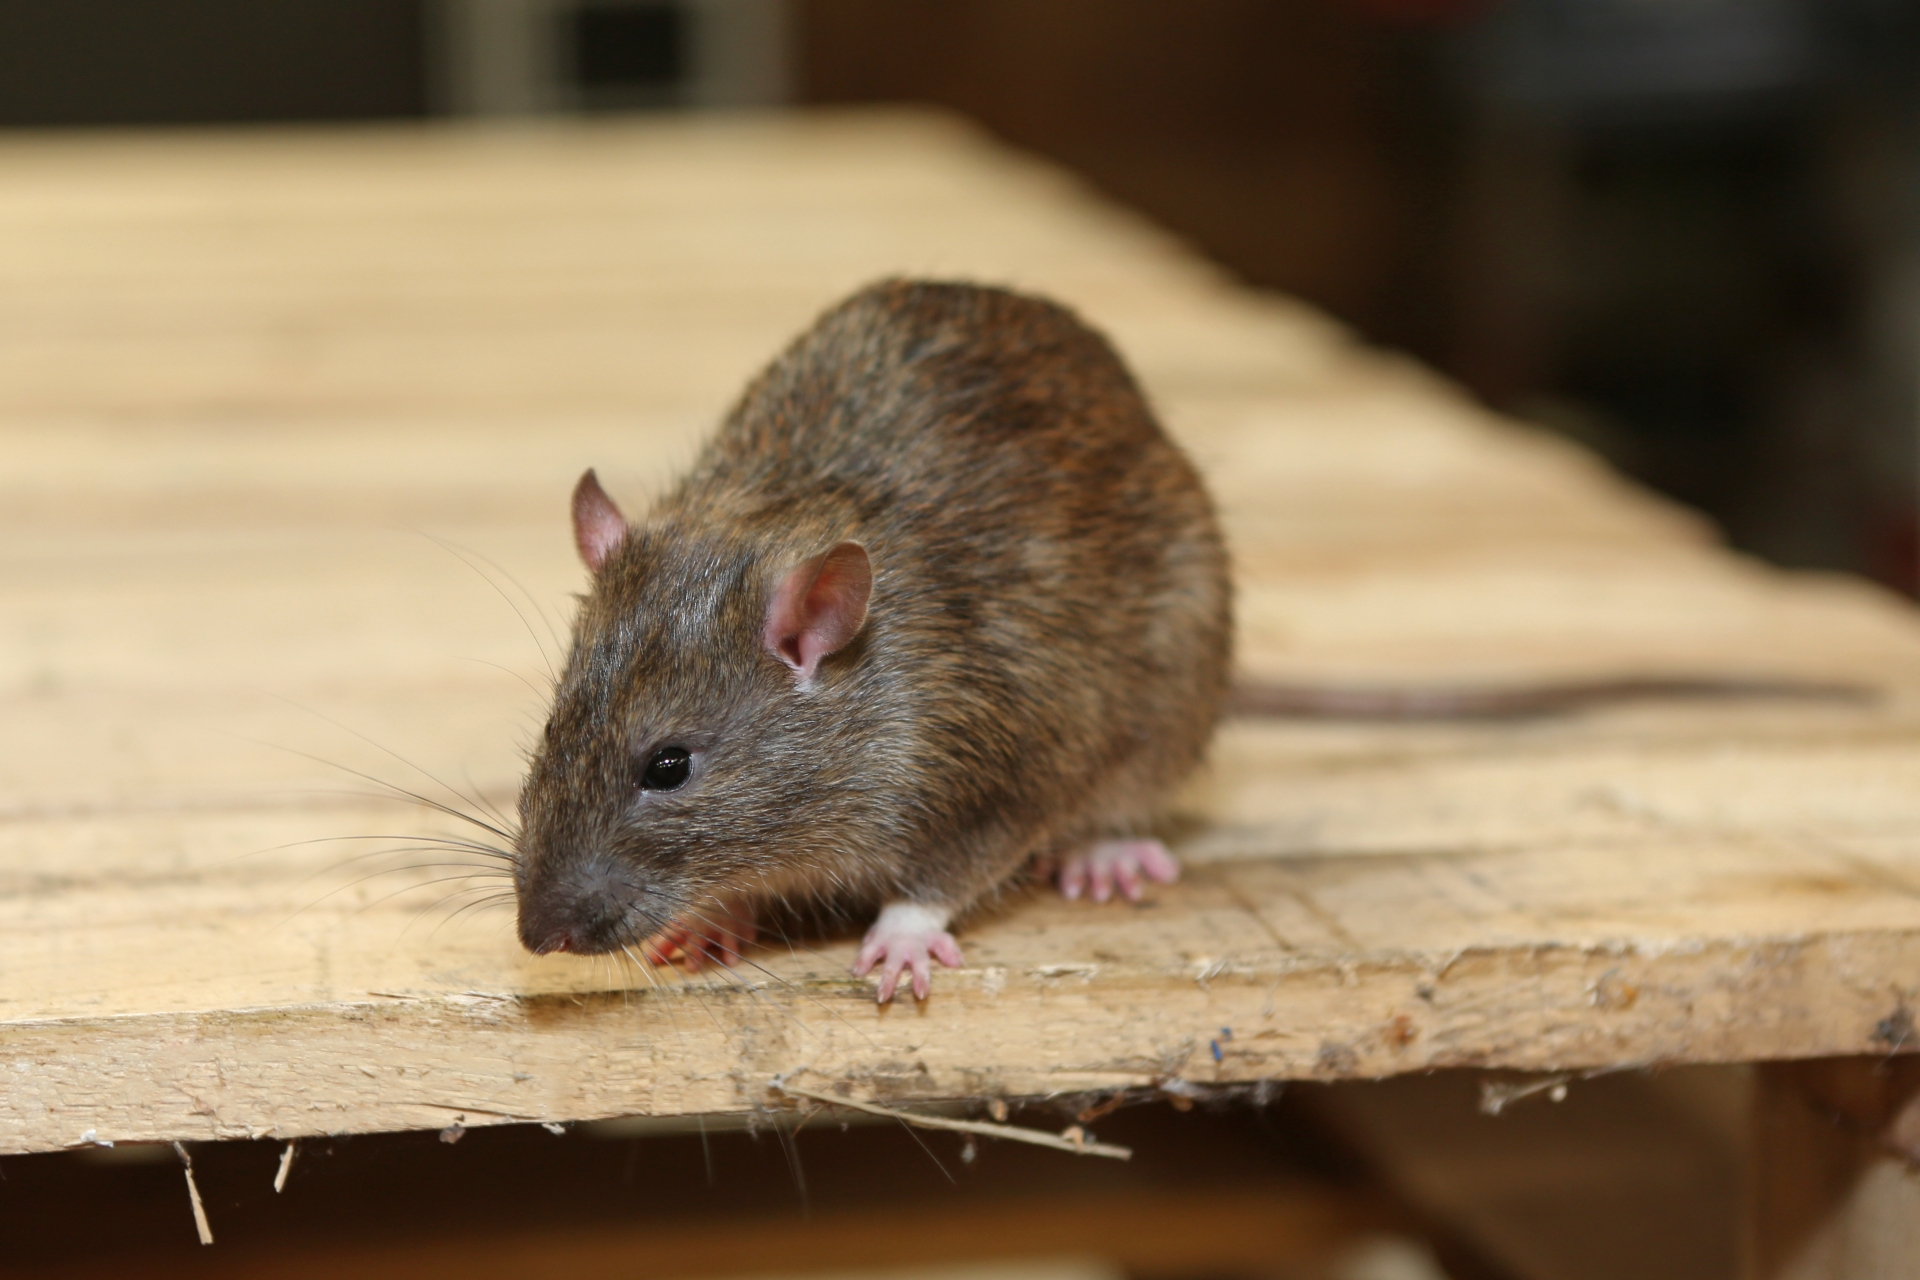 Rat Infestation, Pest Control in Greenford, UB6. Call Now 020 8166 9746